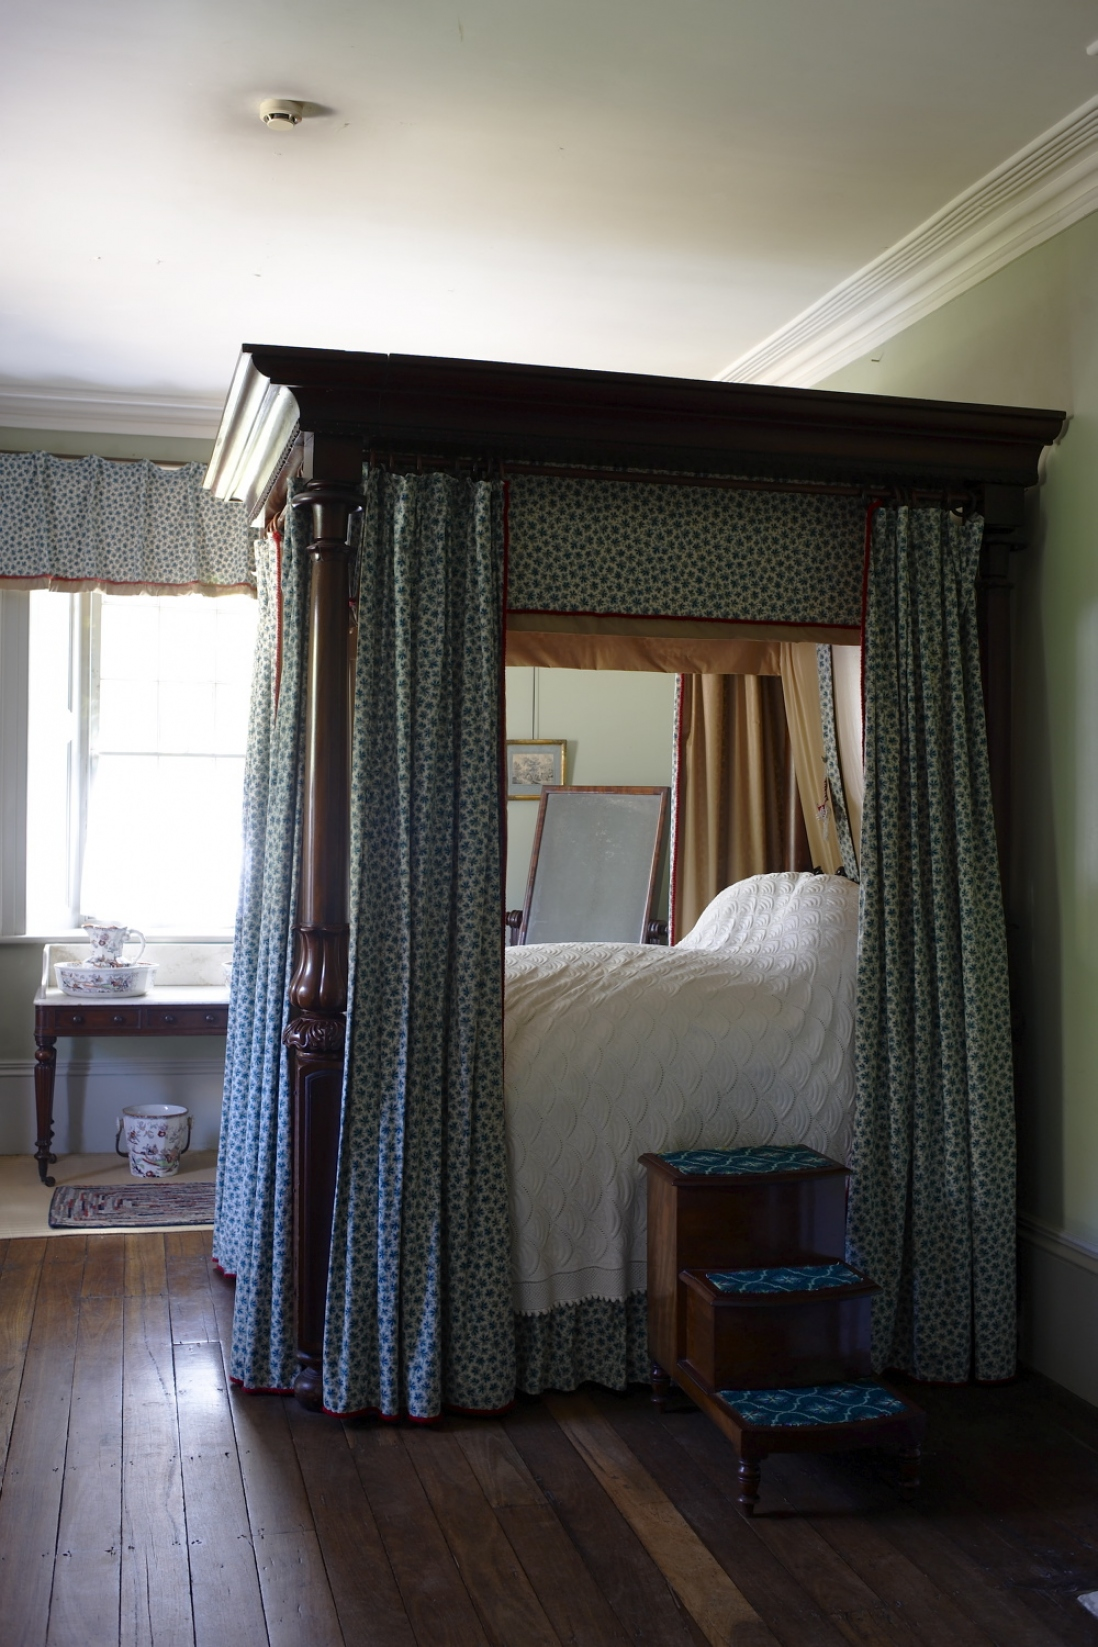 Four-poster bed with blue curtains hanging from wooden frame and wooden bedsteps at side of white covered bed, backlit by window.